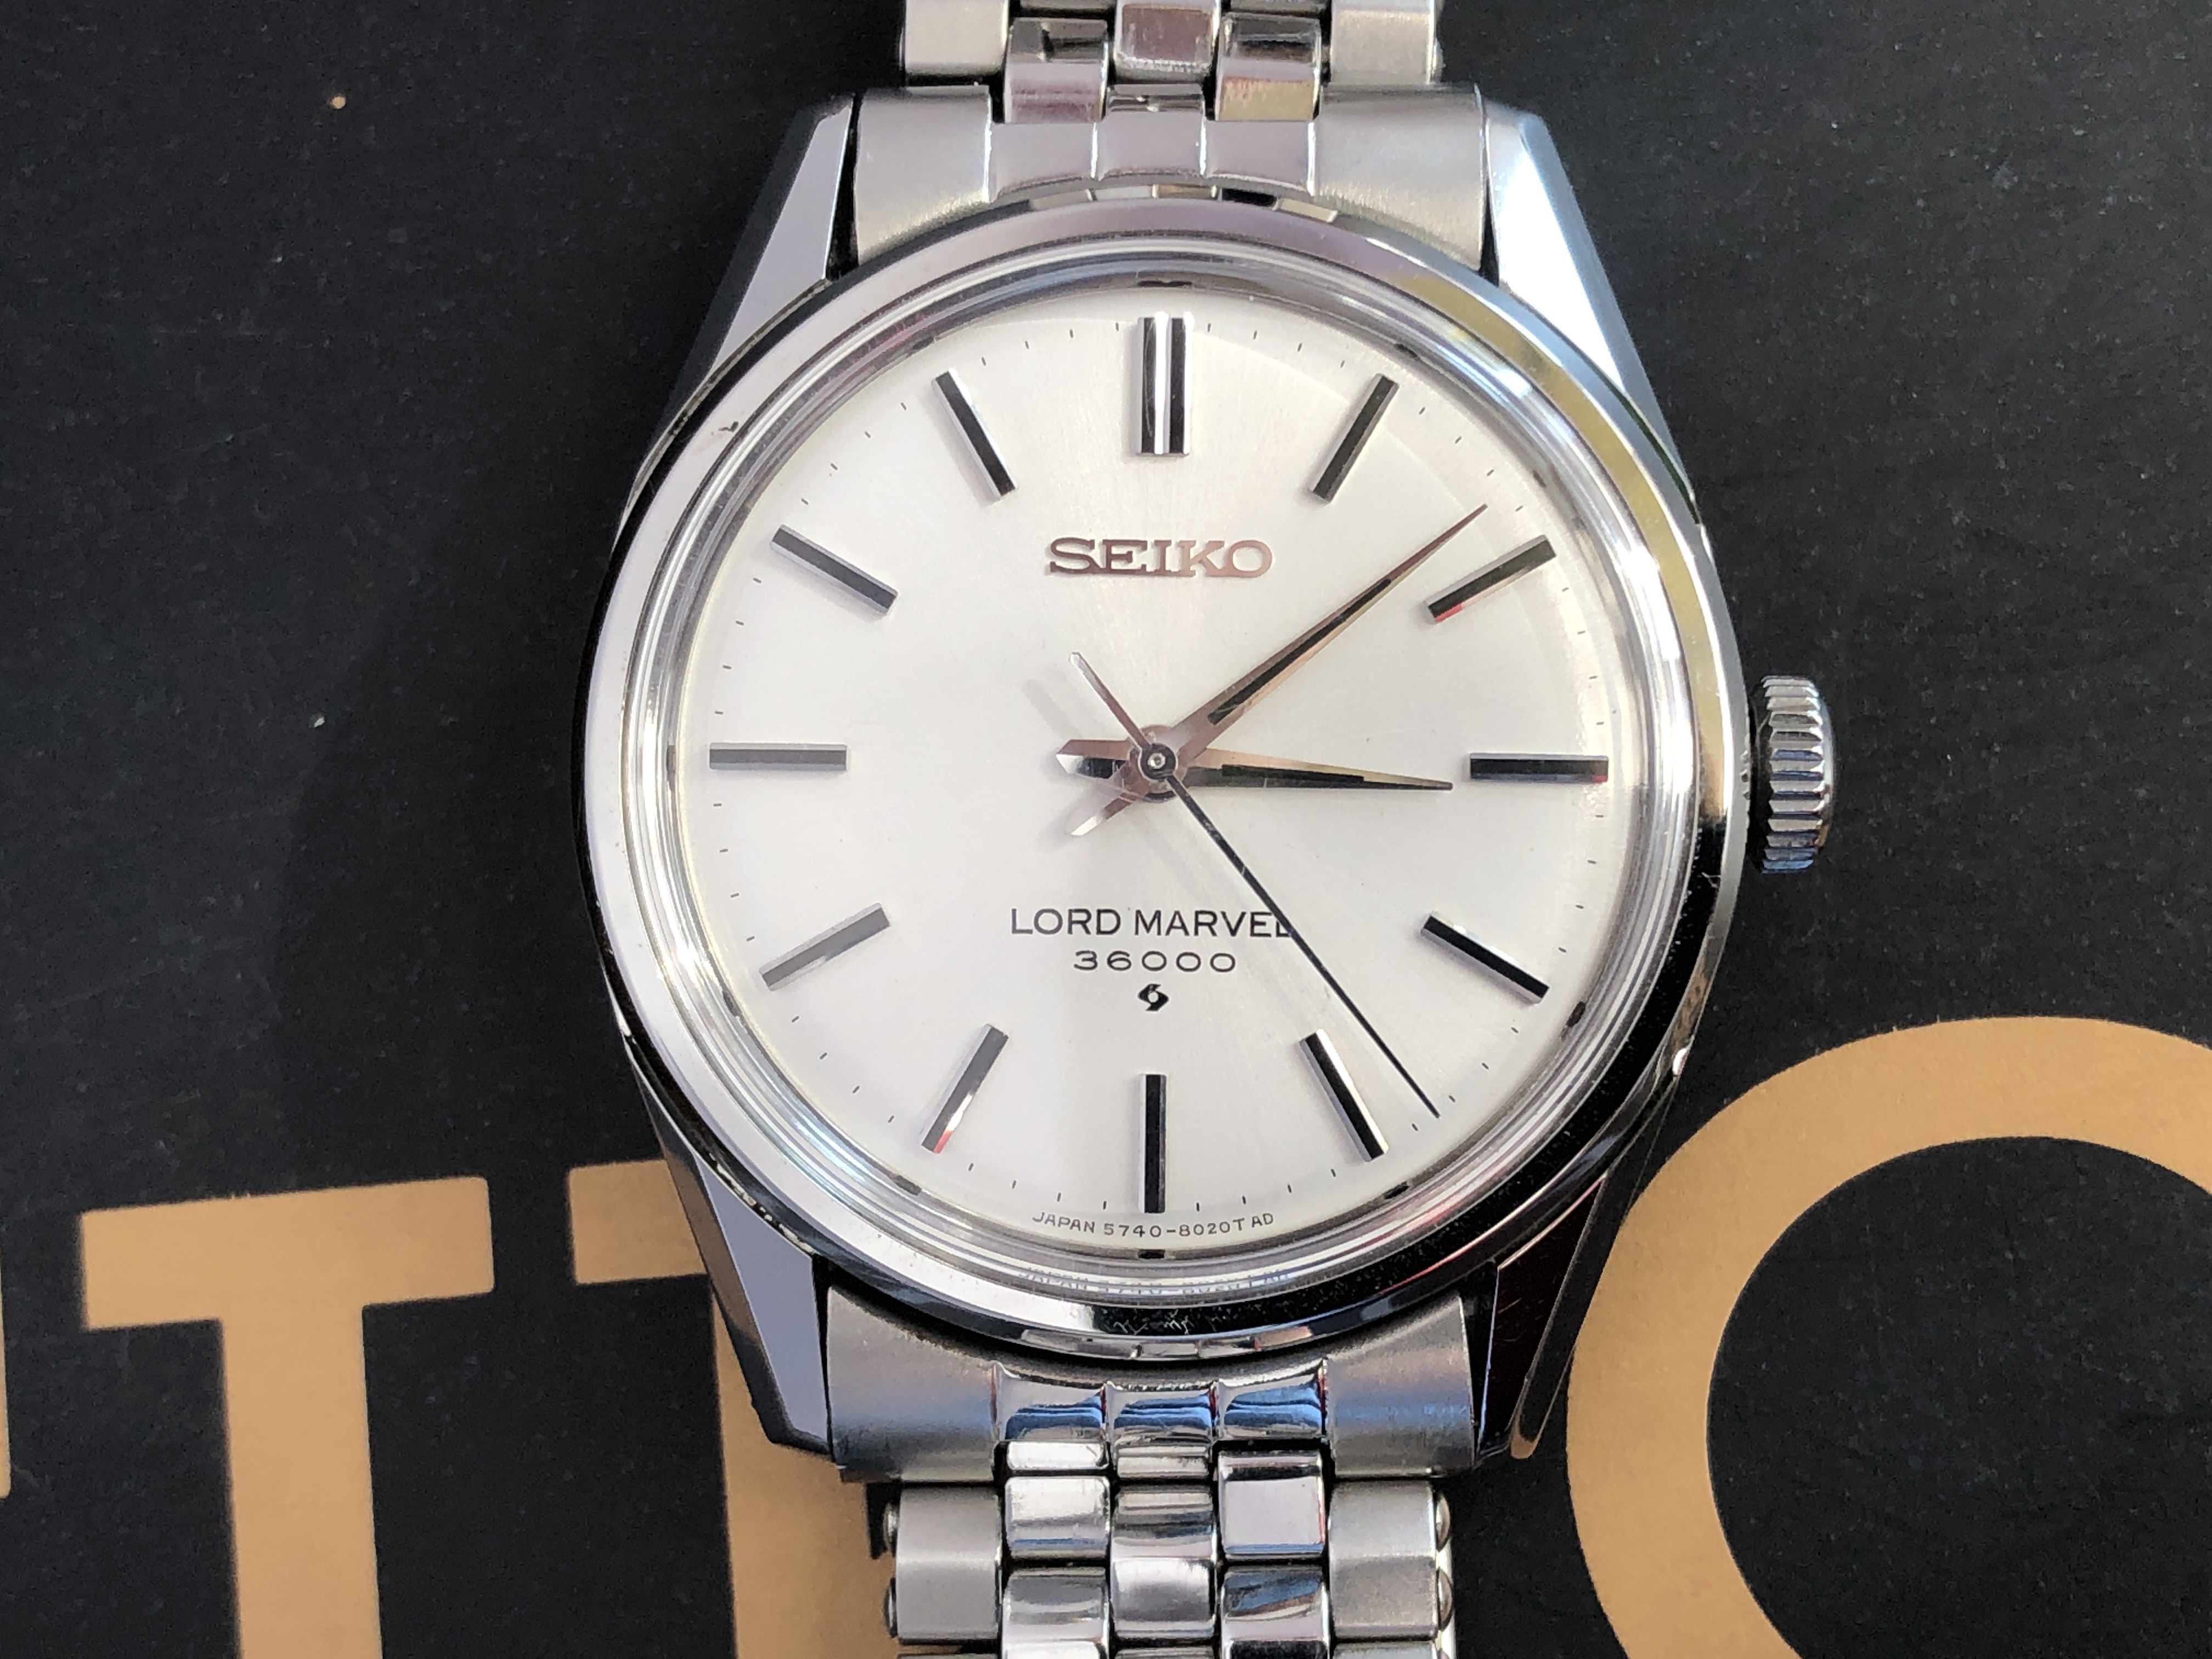 Seiko Lord Marvel 5740-8000 (Reserved)